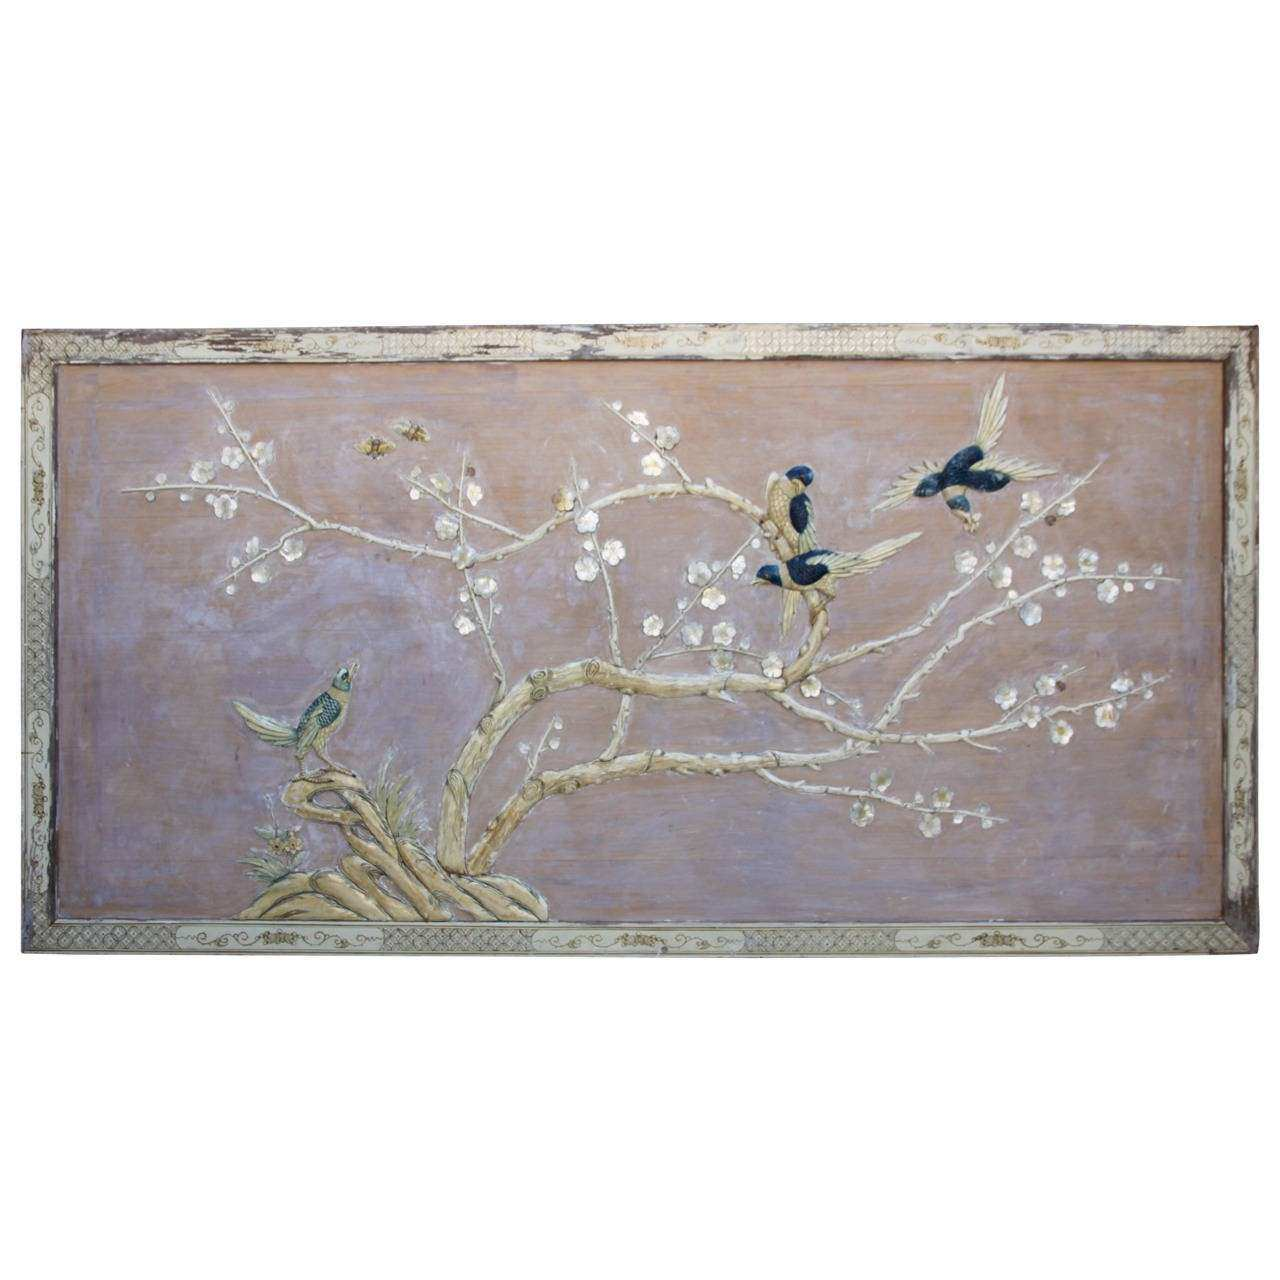 Wood and Mother of Pearl Asian Wall Hanging at 1stdibs